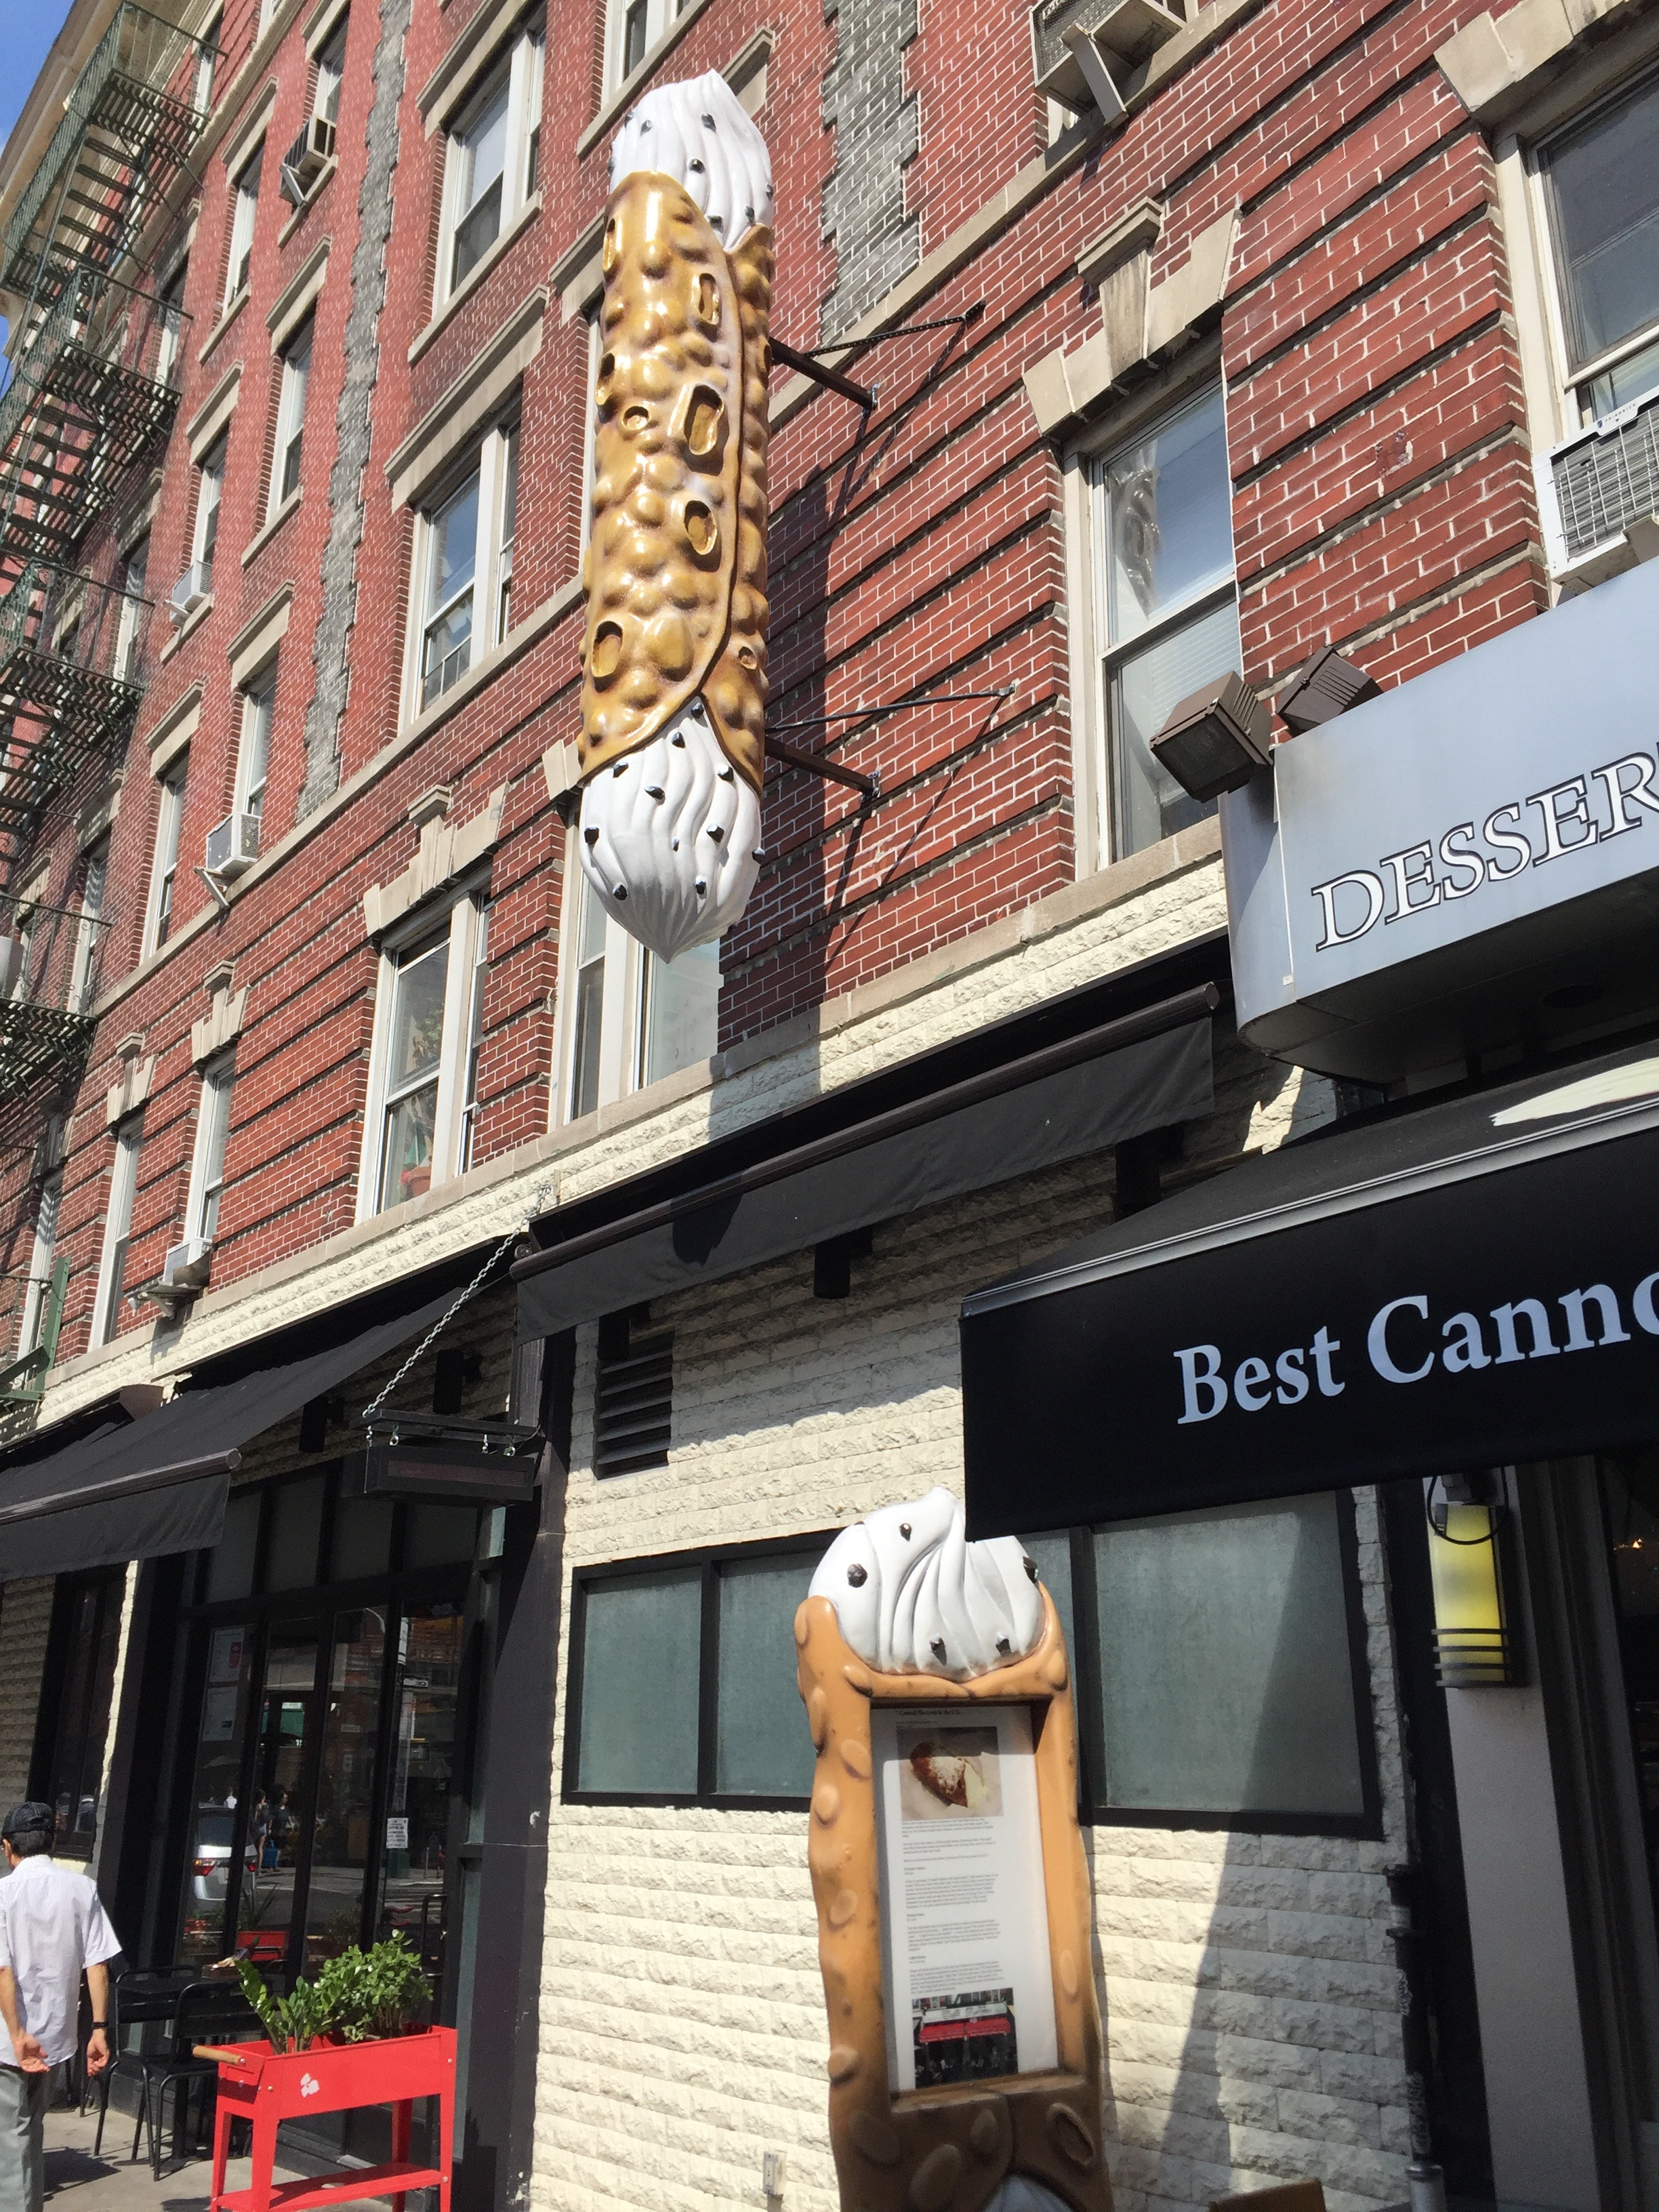 Cannoli sign suspended from building